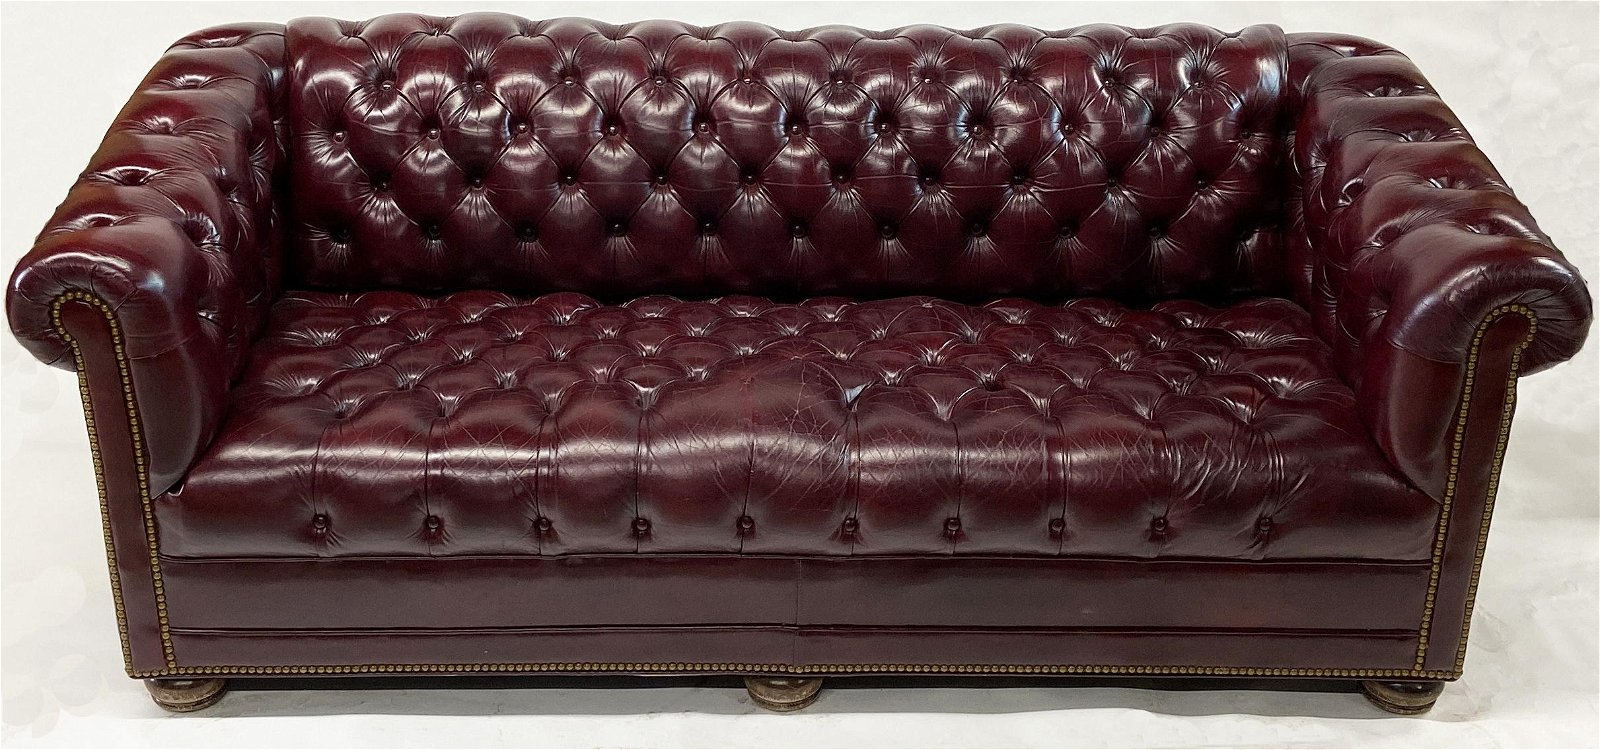 Hancock & Moore Red Leather Chesterfield Sofa.